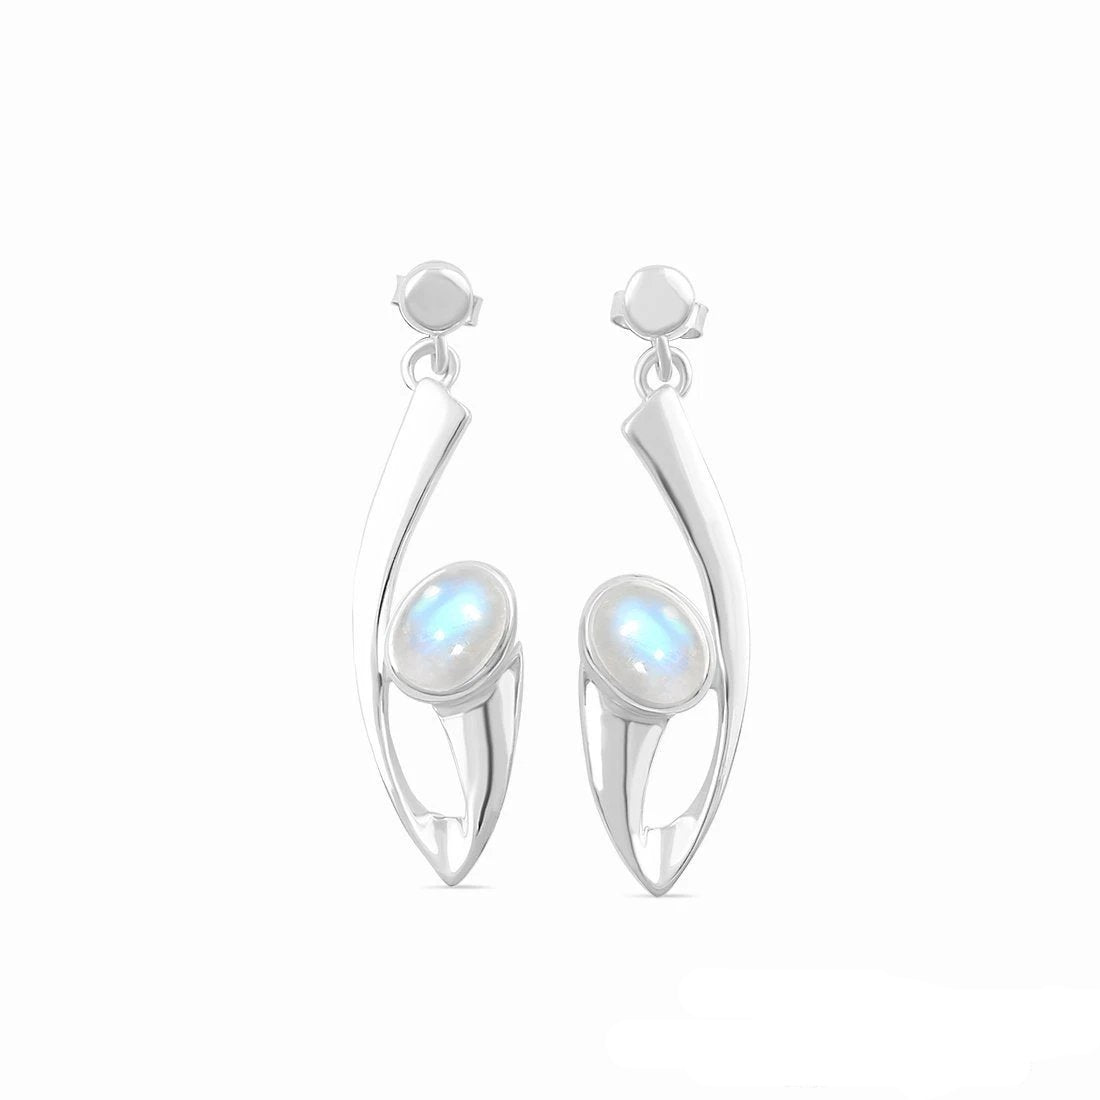 Moonstone Earring-Eternia Sale Item 925 SILVER & MOONSTONE